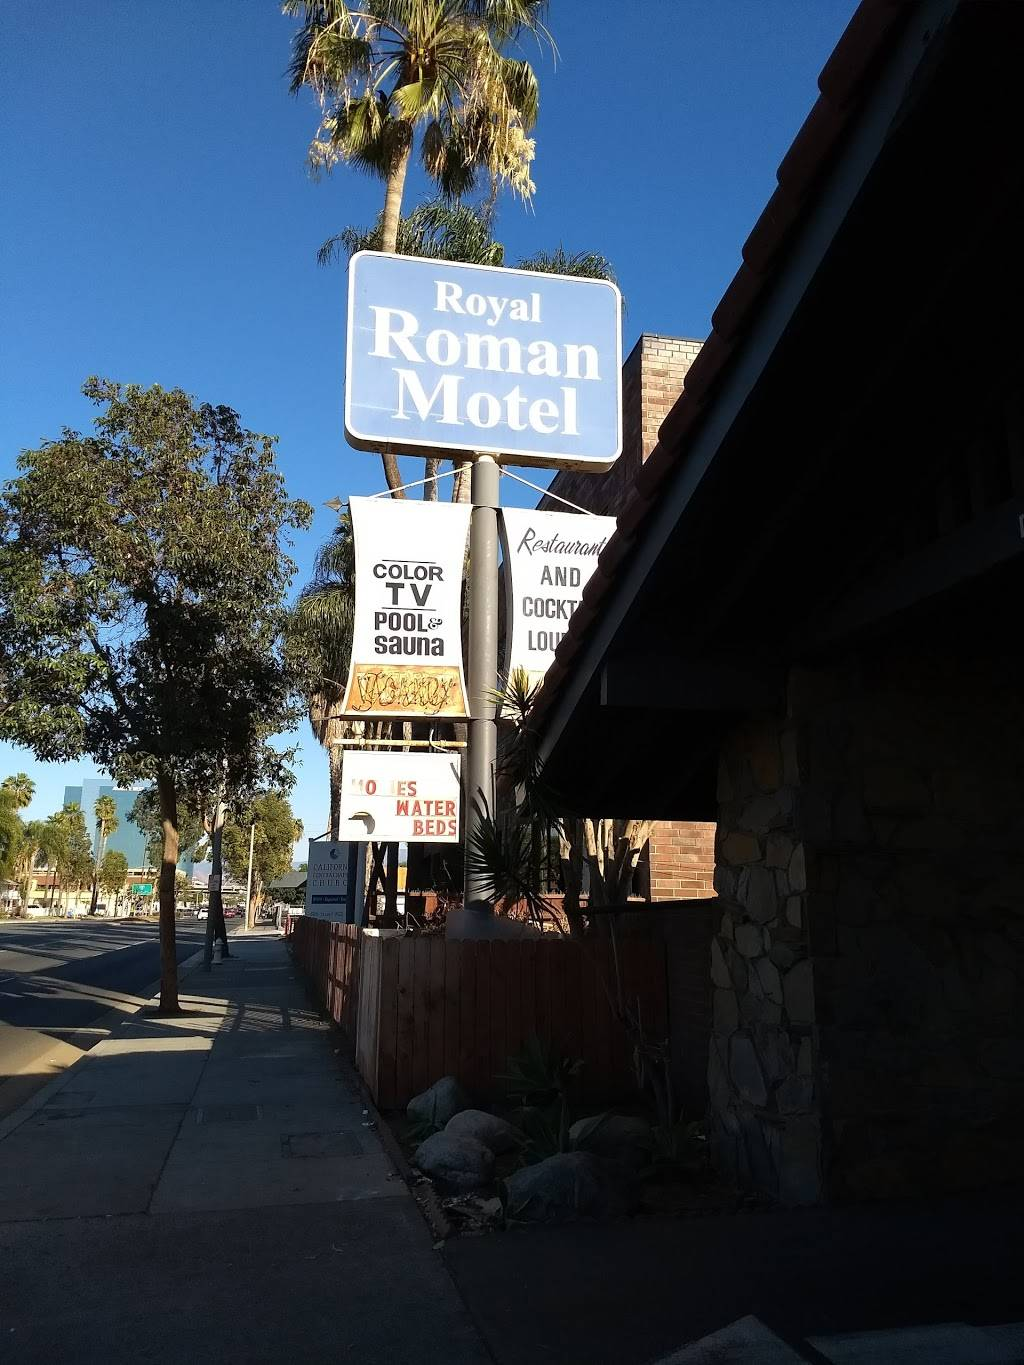 Royal Roman Motel - lodging  | Photo 5 of 10 | Address: 1504 E First St, Santa Ana, CA 92701, USA | Phone: (714) 547-8411